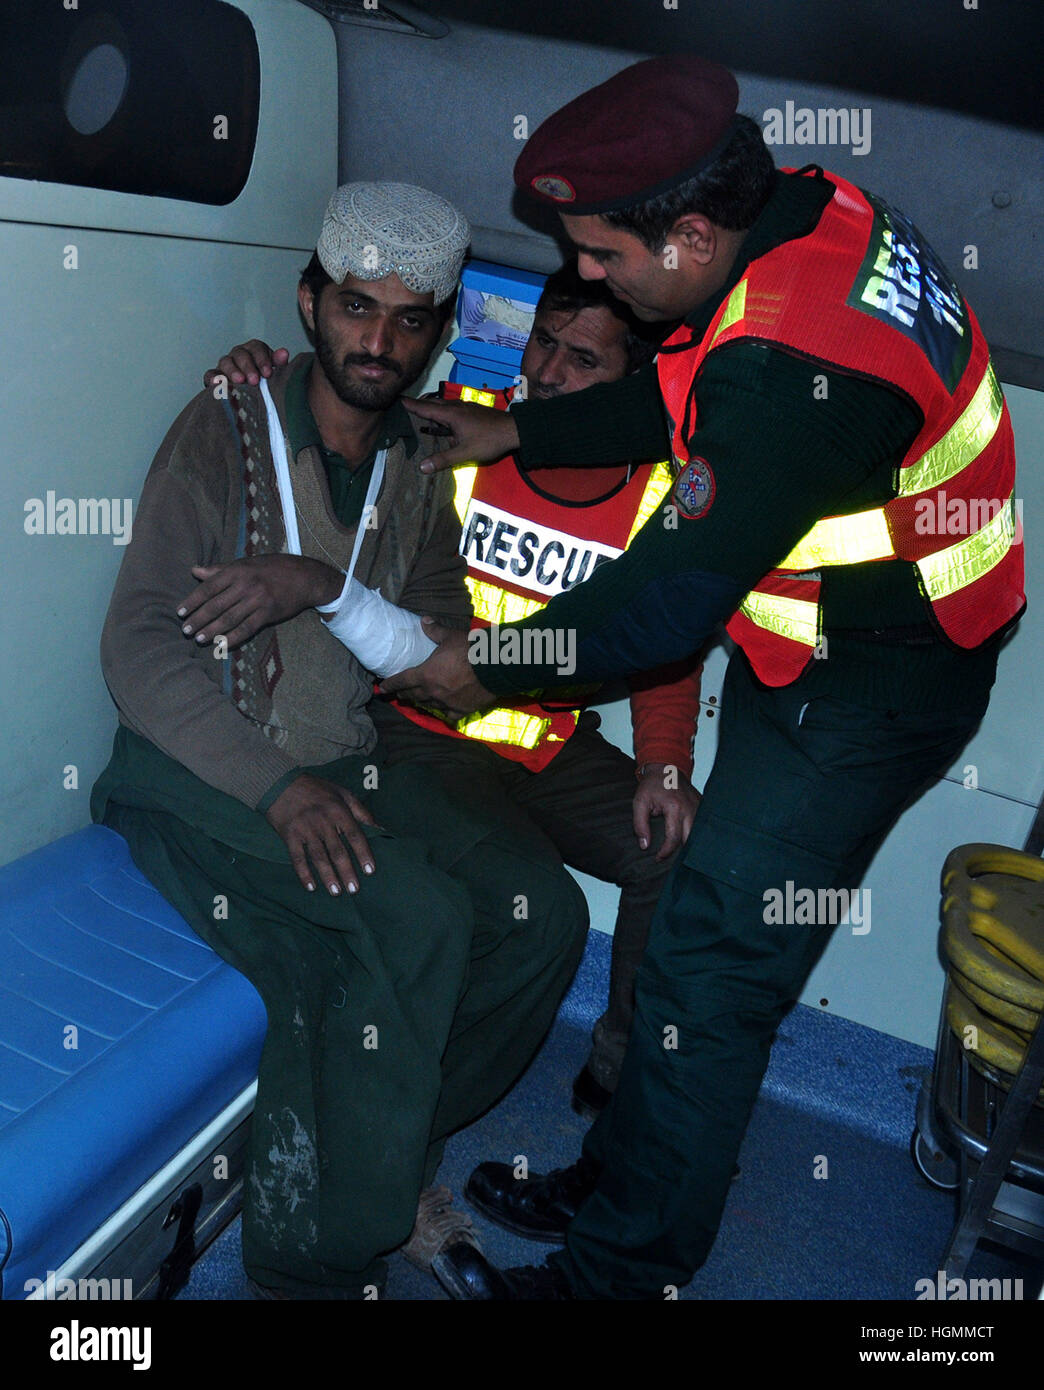 Lahore. 11th Jan, 2017. Rescuers help an injured man after a fire in eastern Pakistan's Lahore on Jan. 11, 2017. - Stock Image